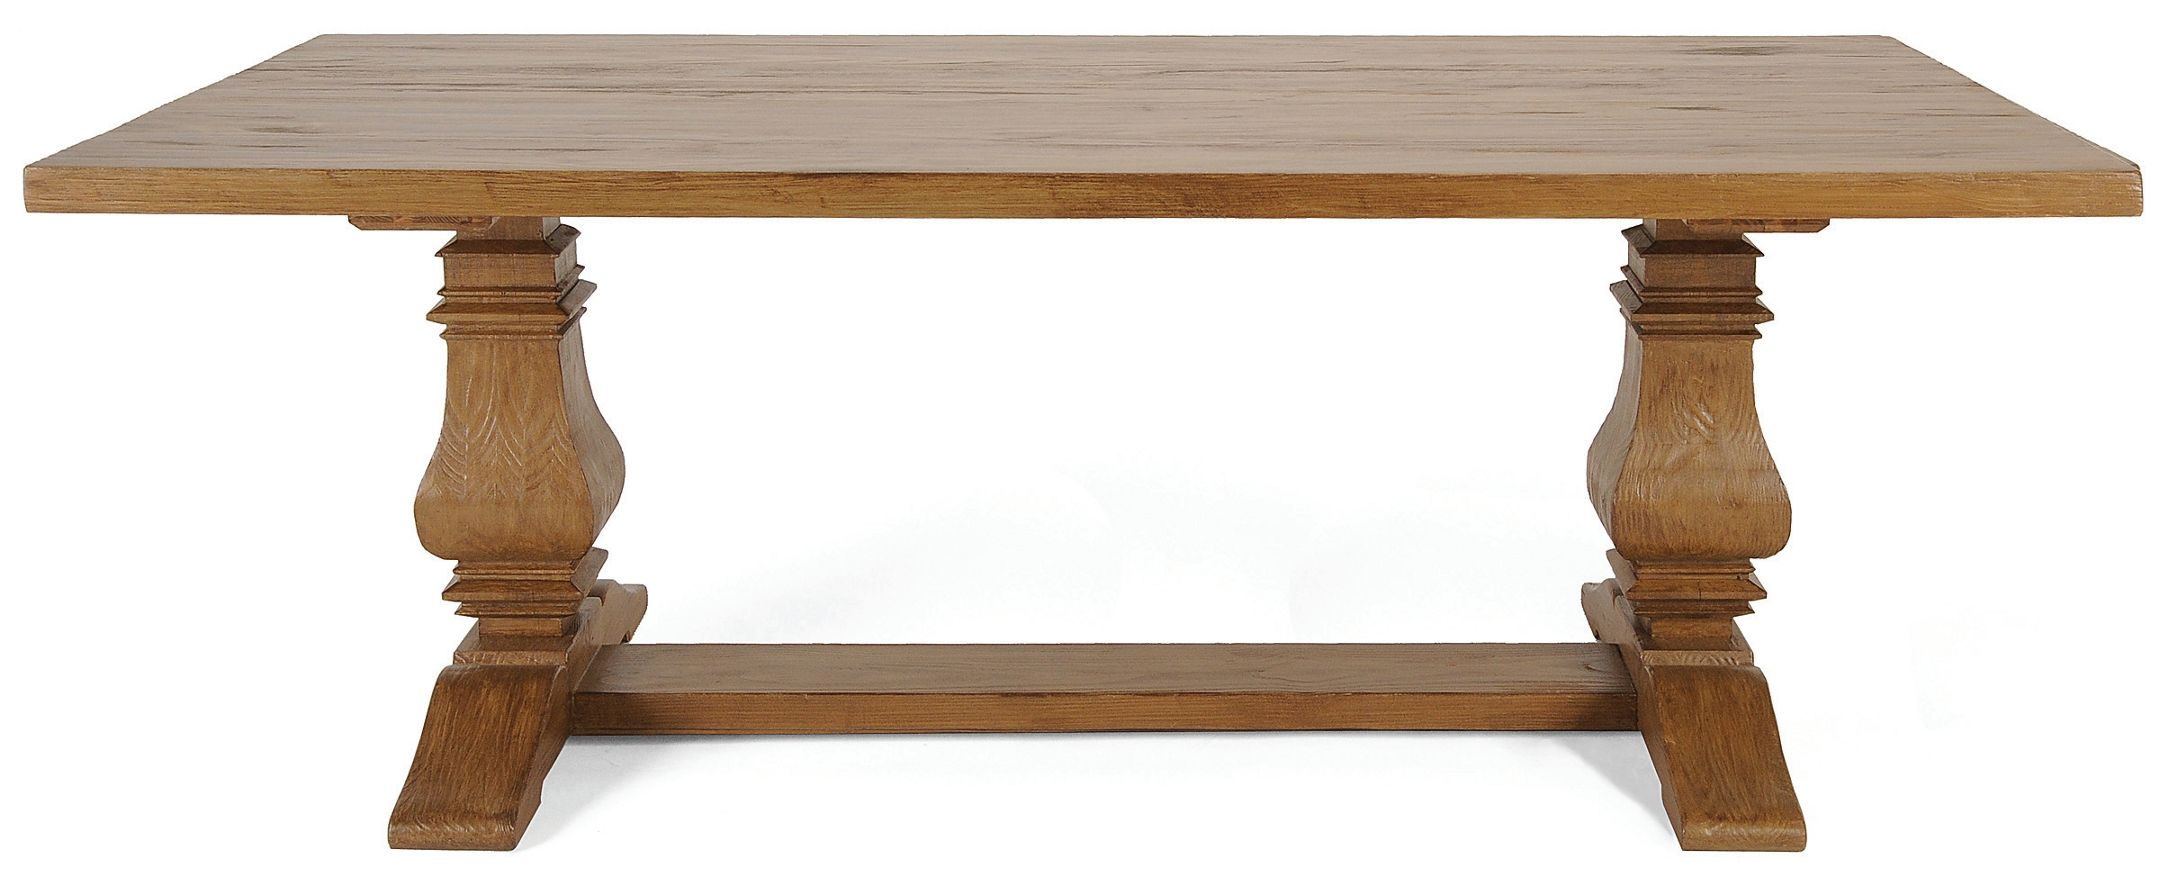 Lane Tyden Dining Table Dimensions 30 H X 84 W 42 D Custom Sizing Available 45 Unique Hand Applied Finishes Dining Table Dining Table Design Dining Table Dimensions